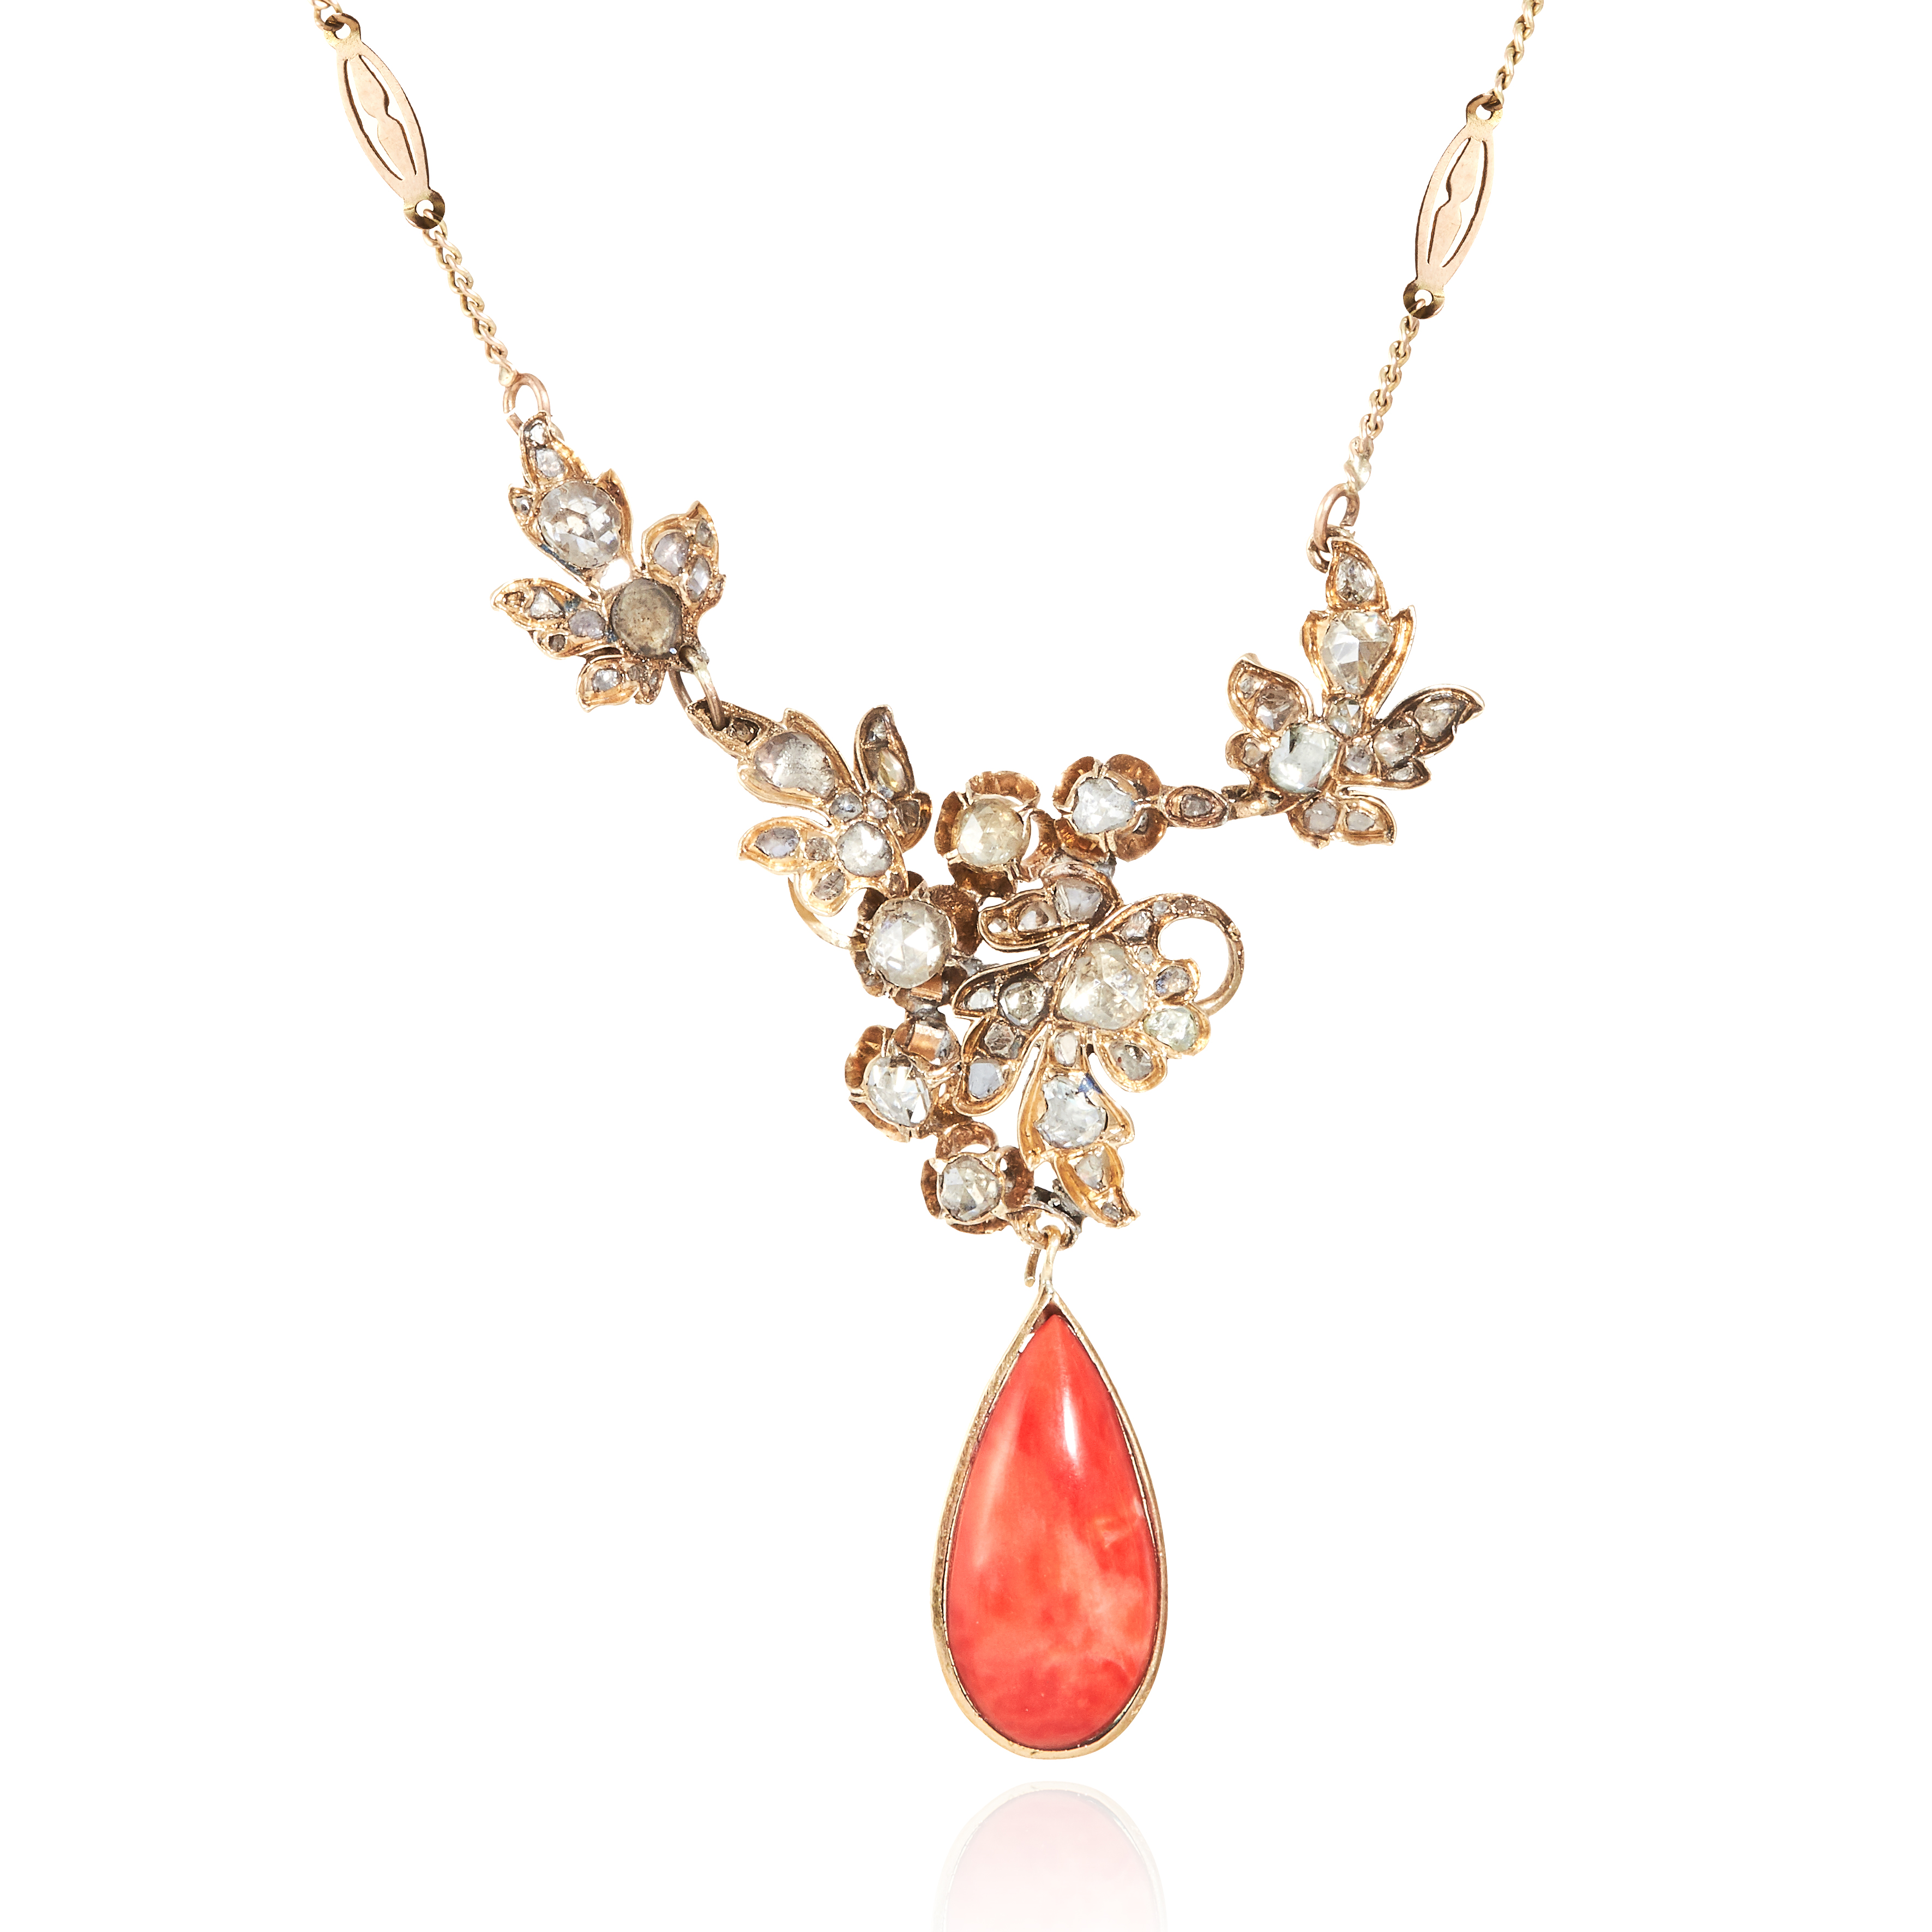 AN ANTIQUE CORAL AND DIAMOND NECKLACE, SPANISH 19TH CENTURY in yellow gold, the pear shaped coral